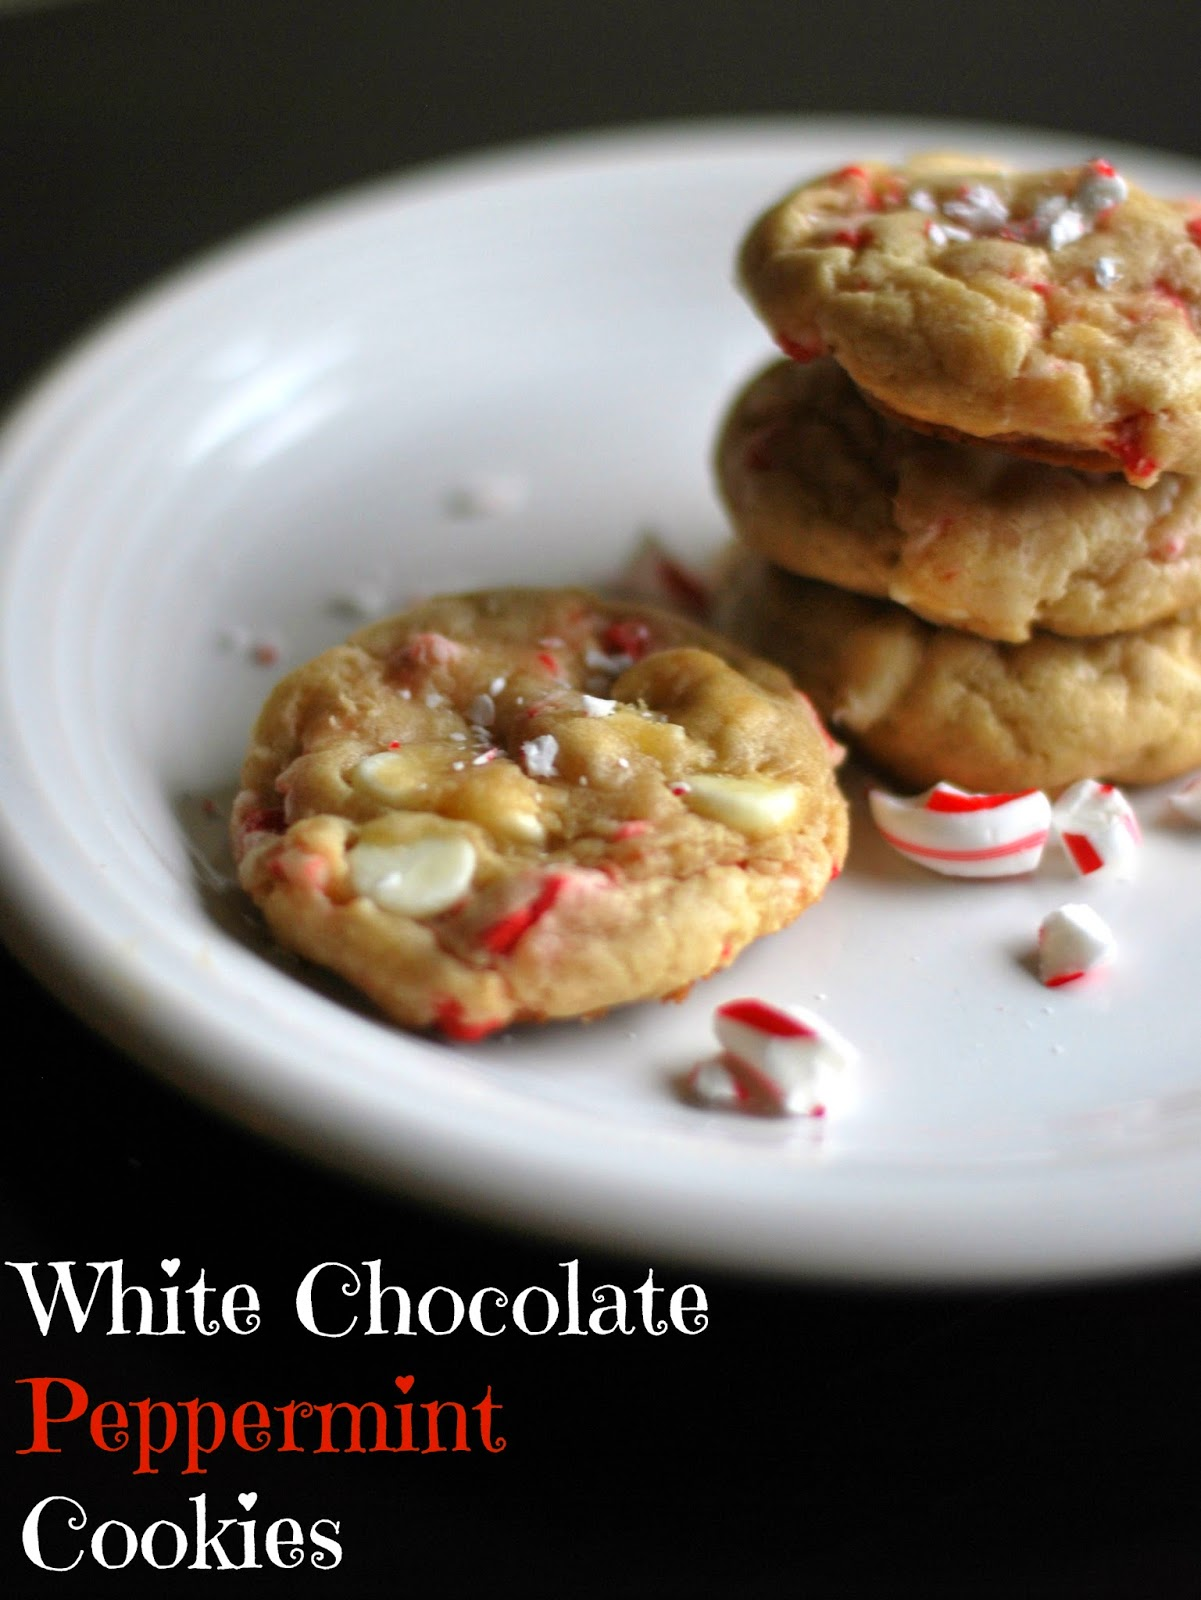 White Chocolate Peppermint Cookies | Aunt Bee's Recipes